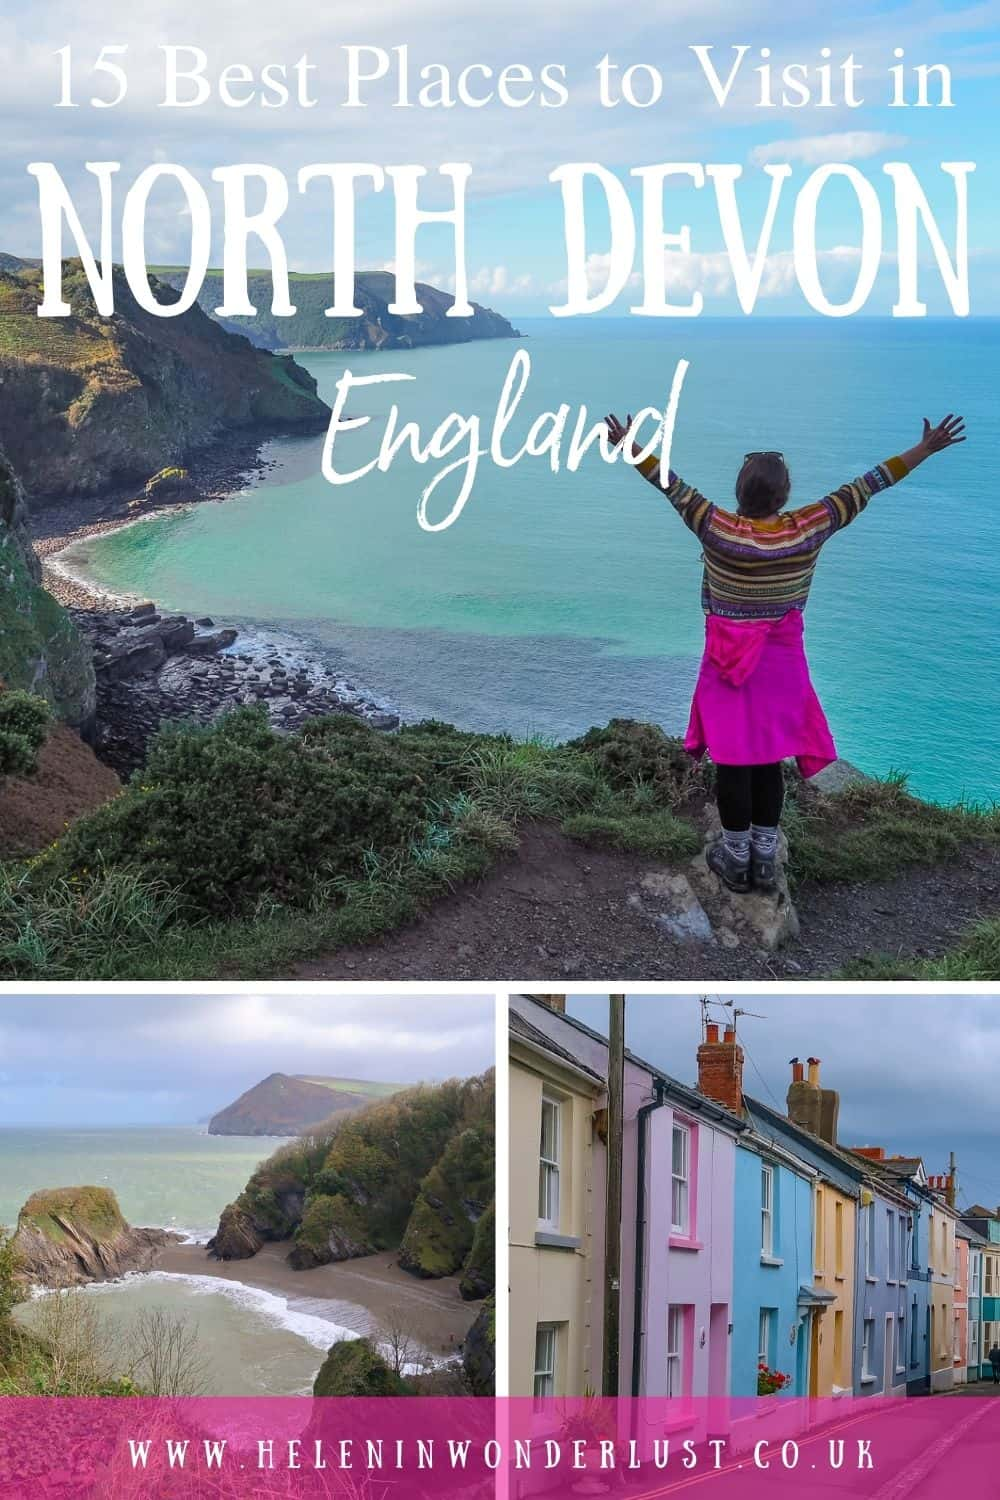 The 15 Best Places to Visit in North Devon, England